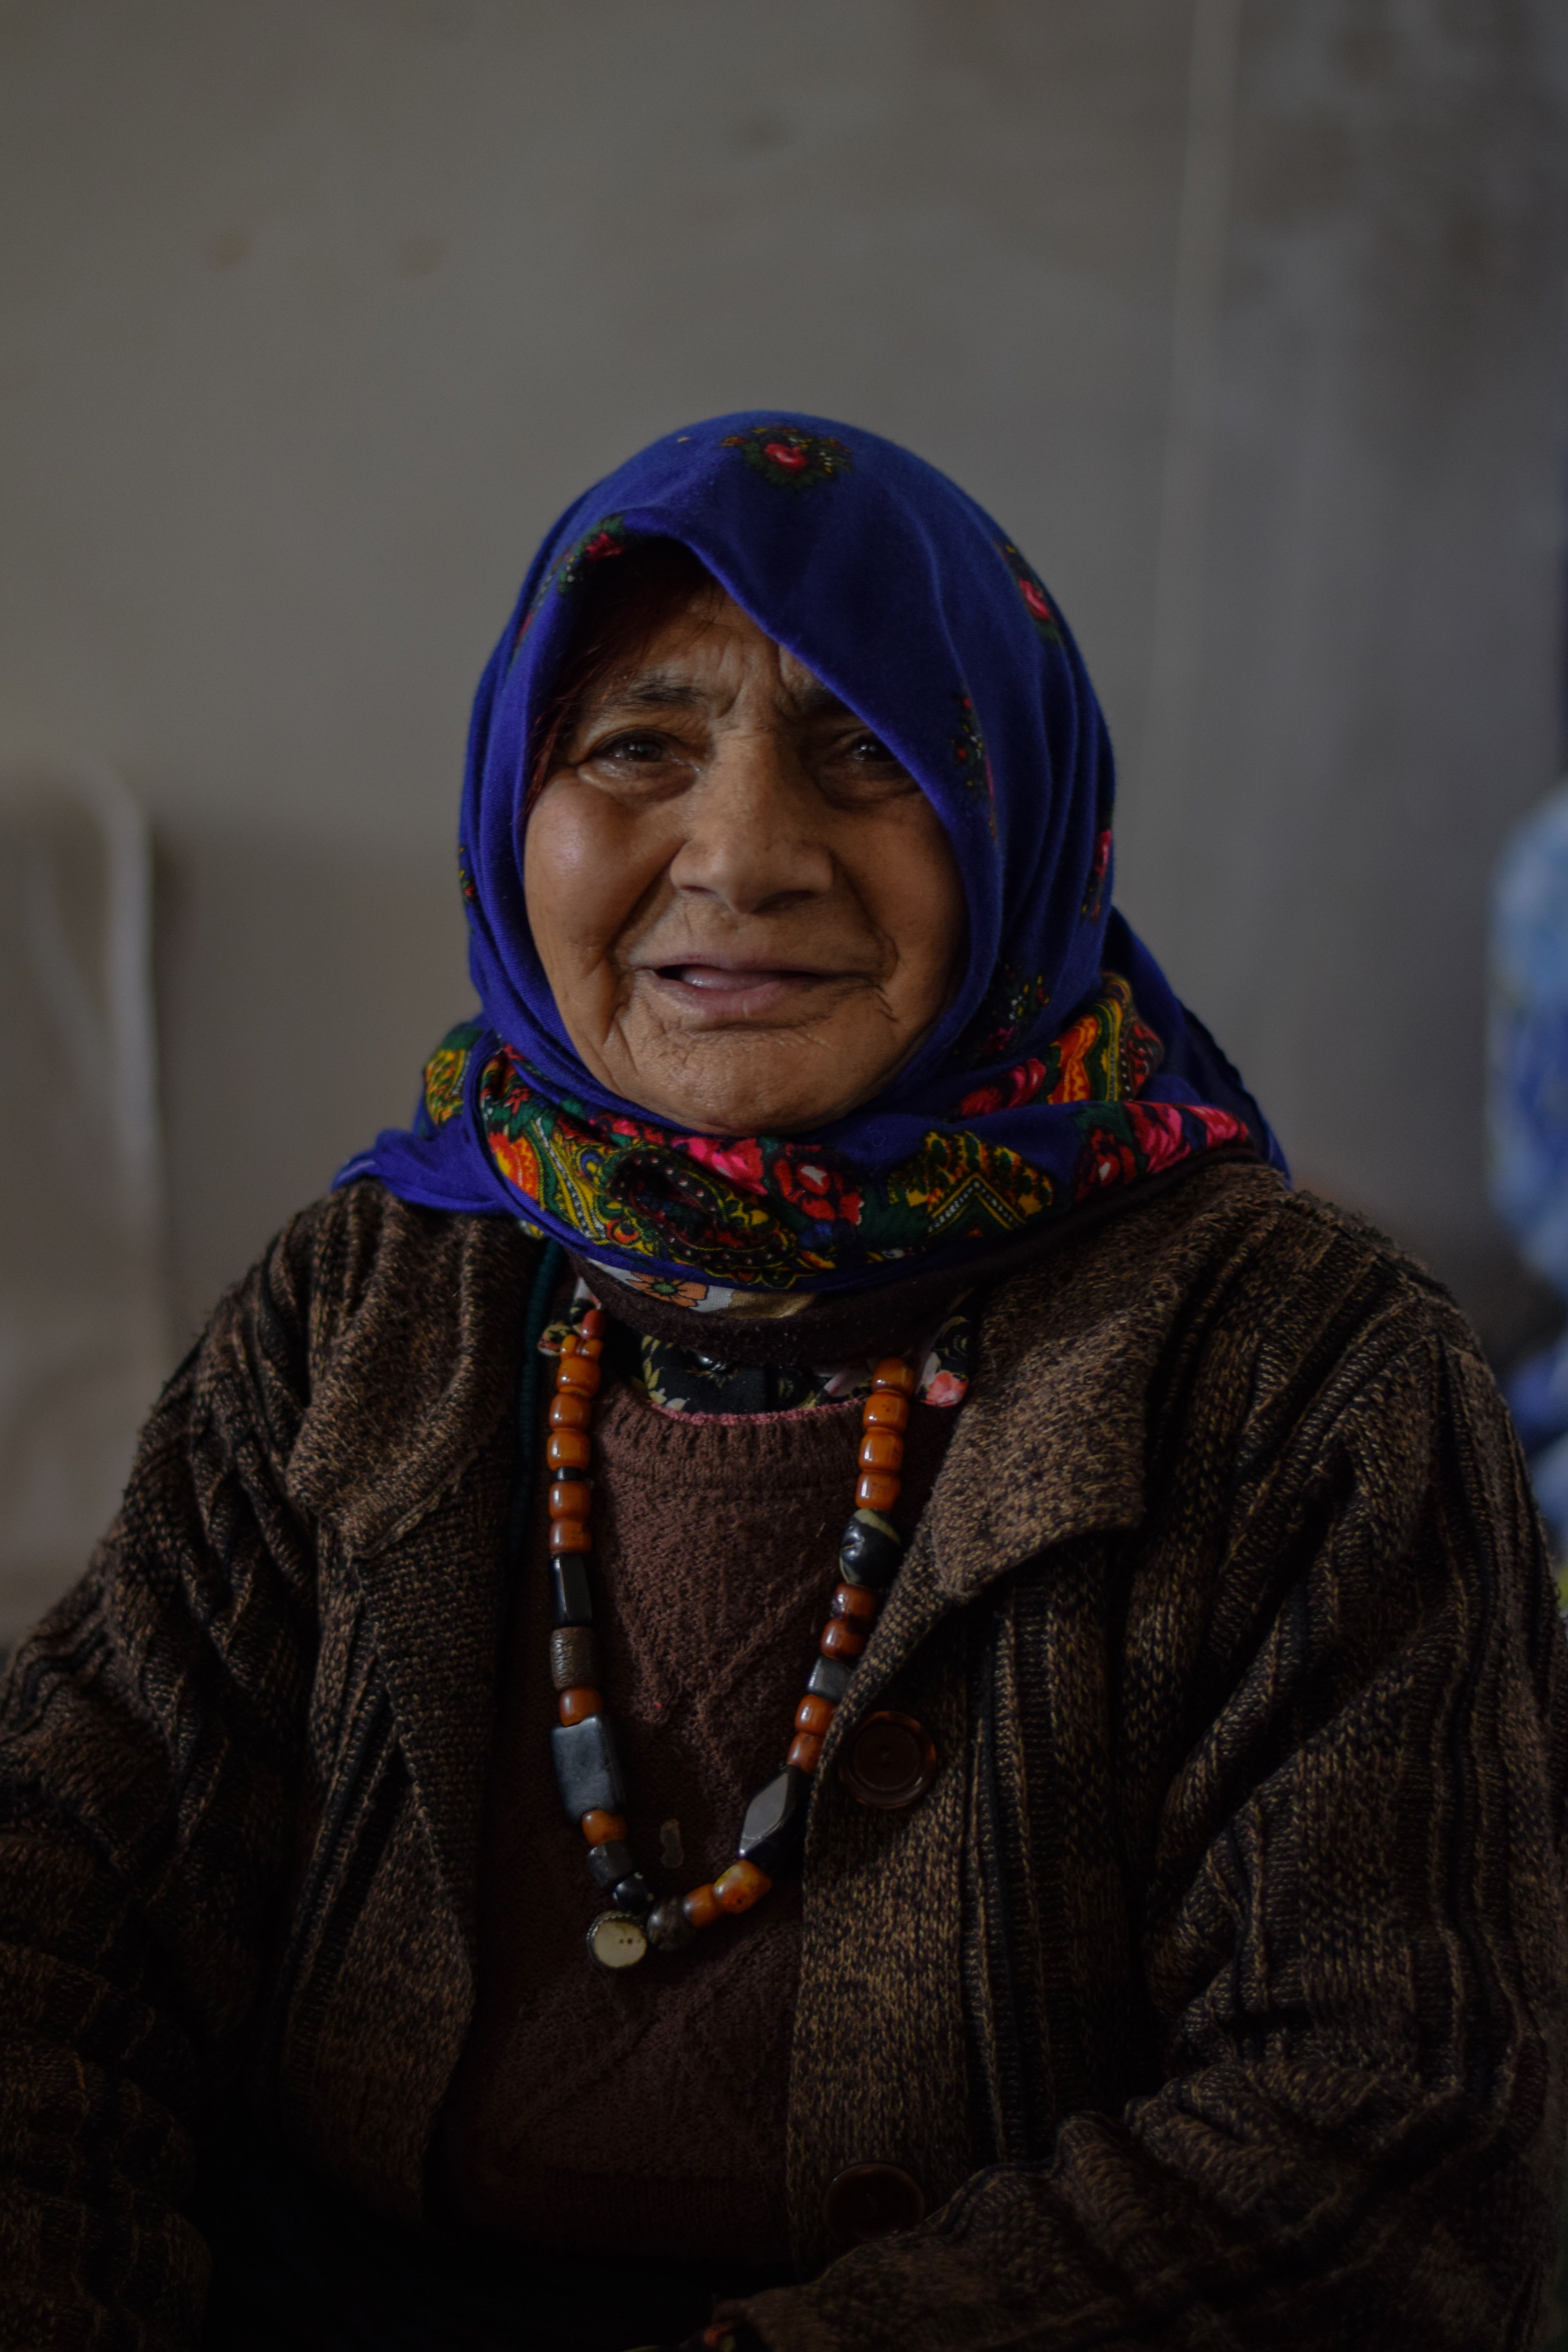 An old woman wearing a blue scarf. | Source: Unsplash